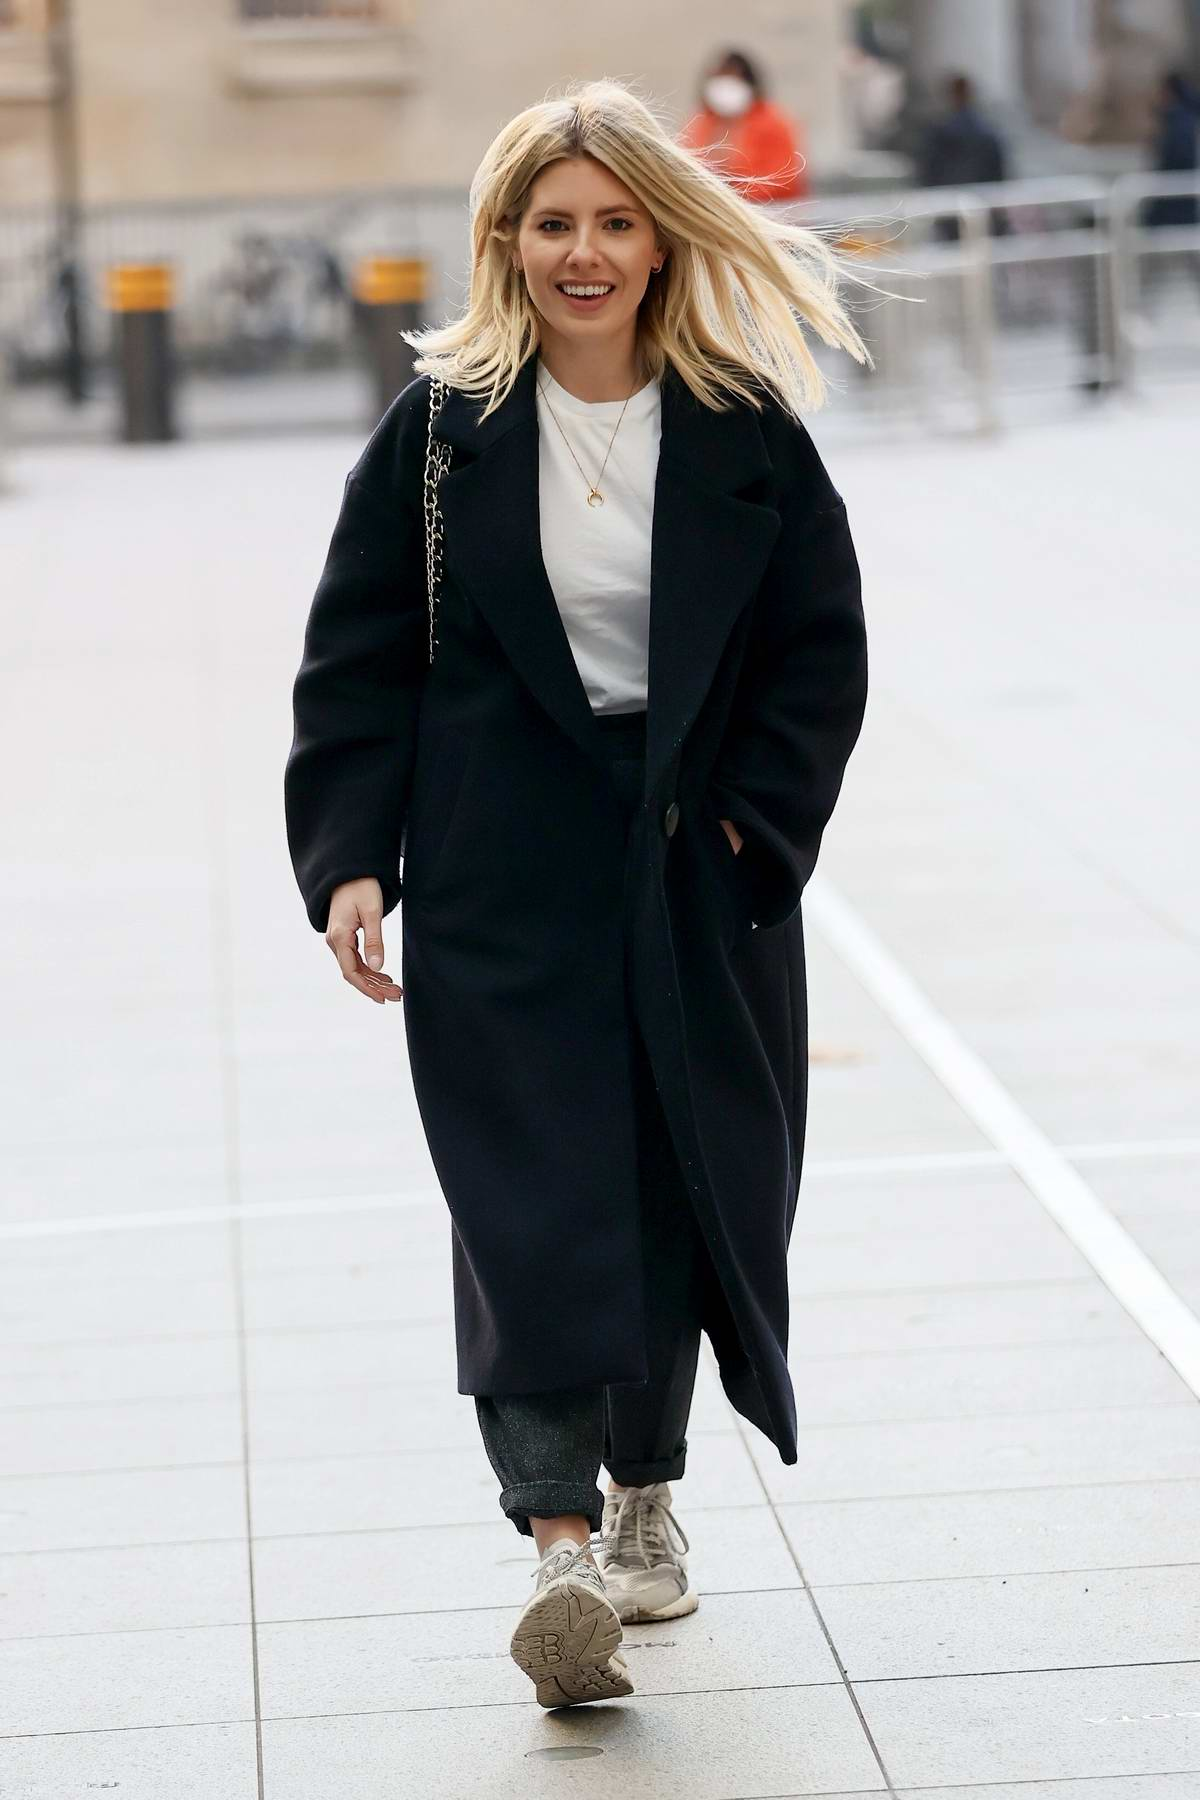 Mollie King is all smiles while flashing her engagement ring as she arrives at BBC Radio One Studios in London, UK